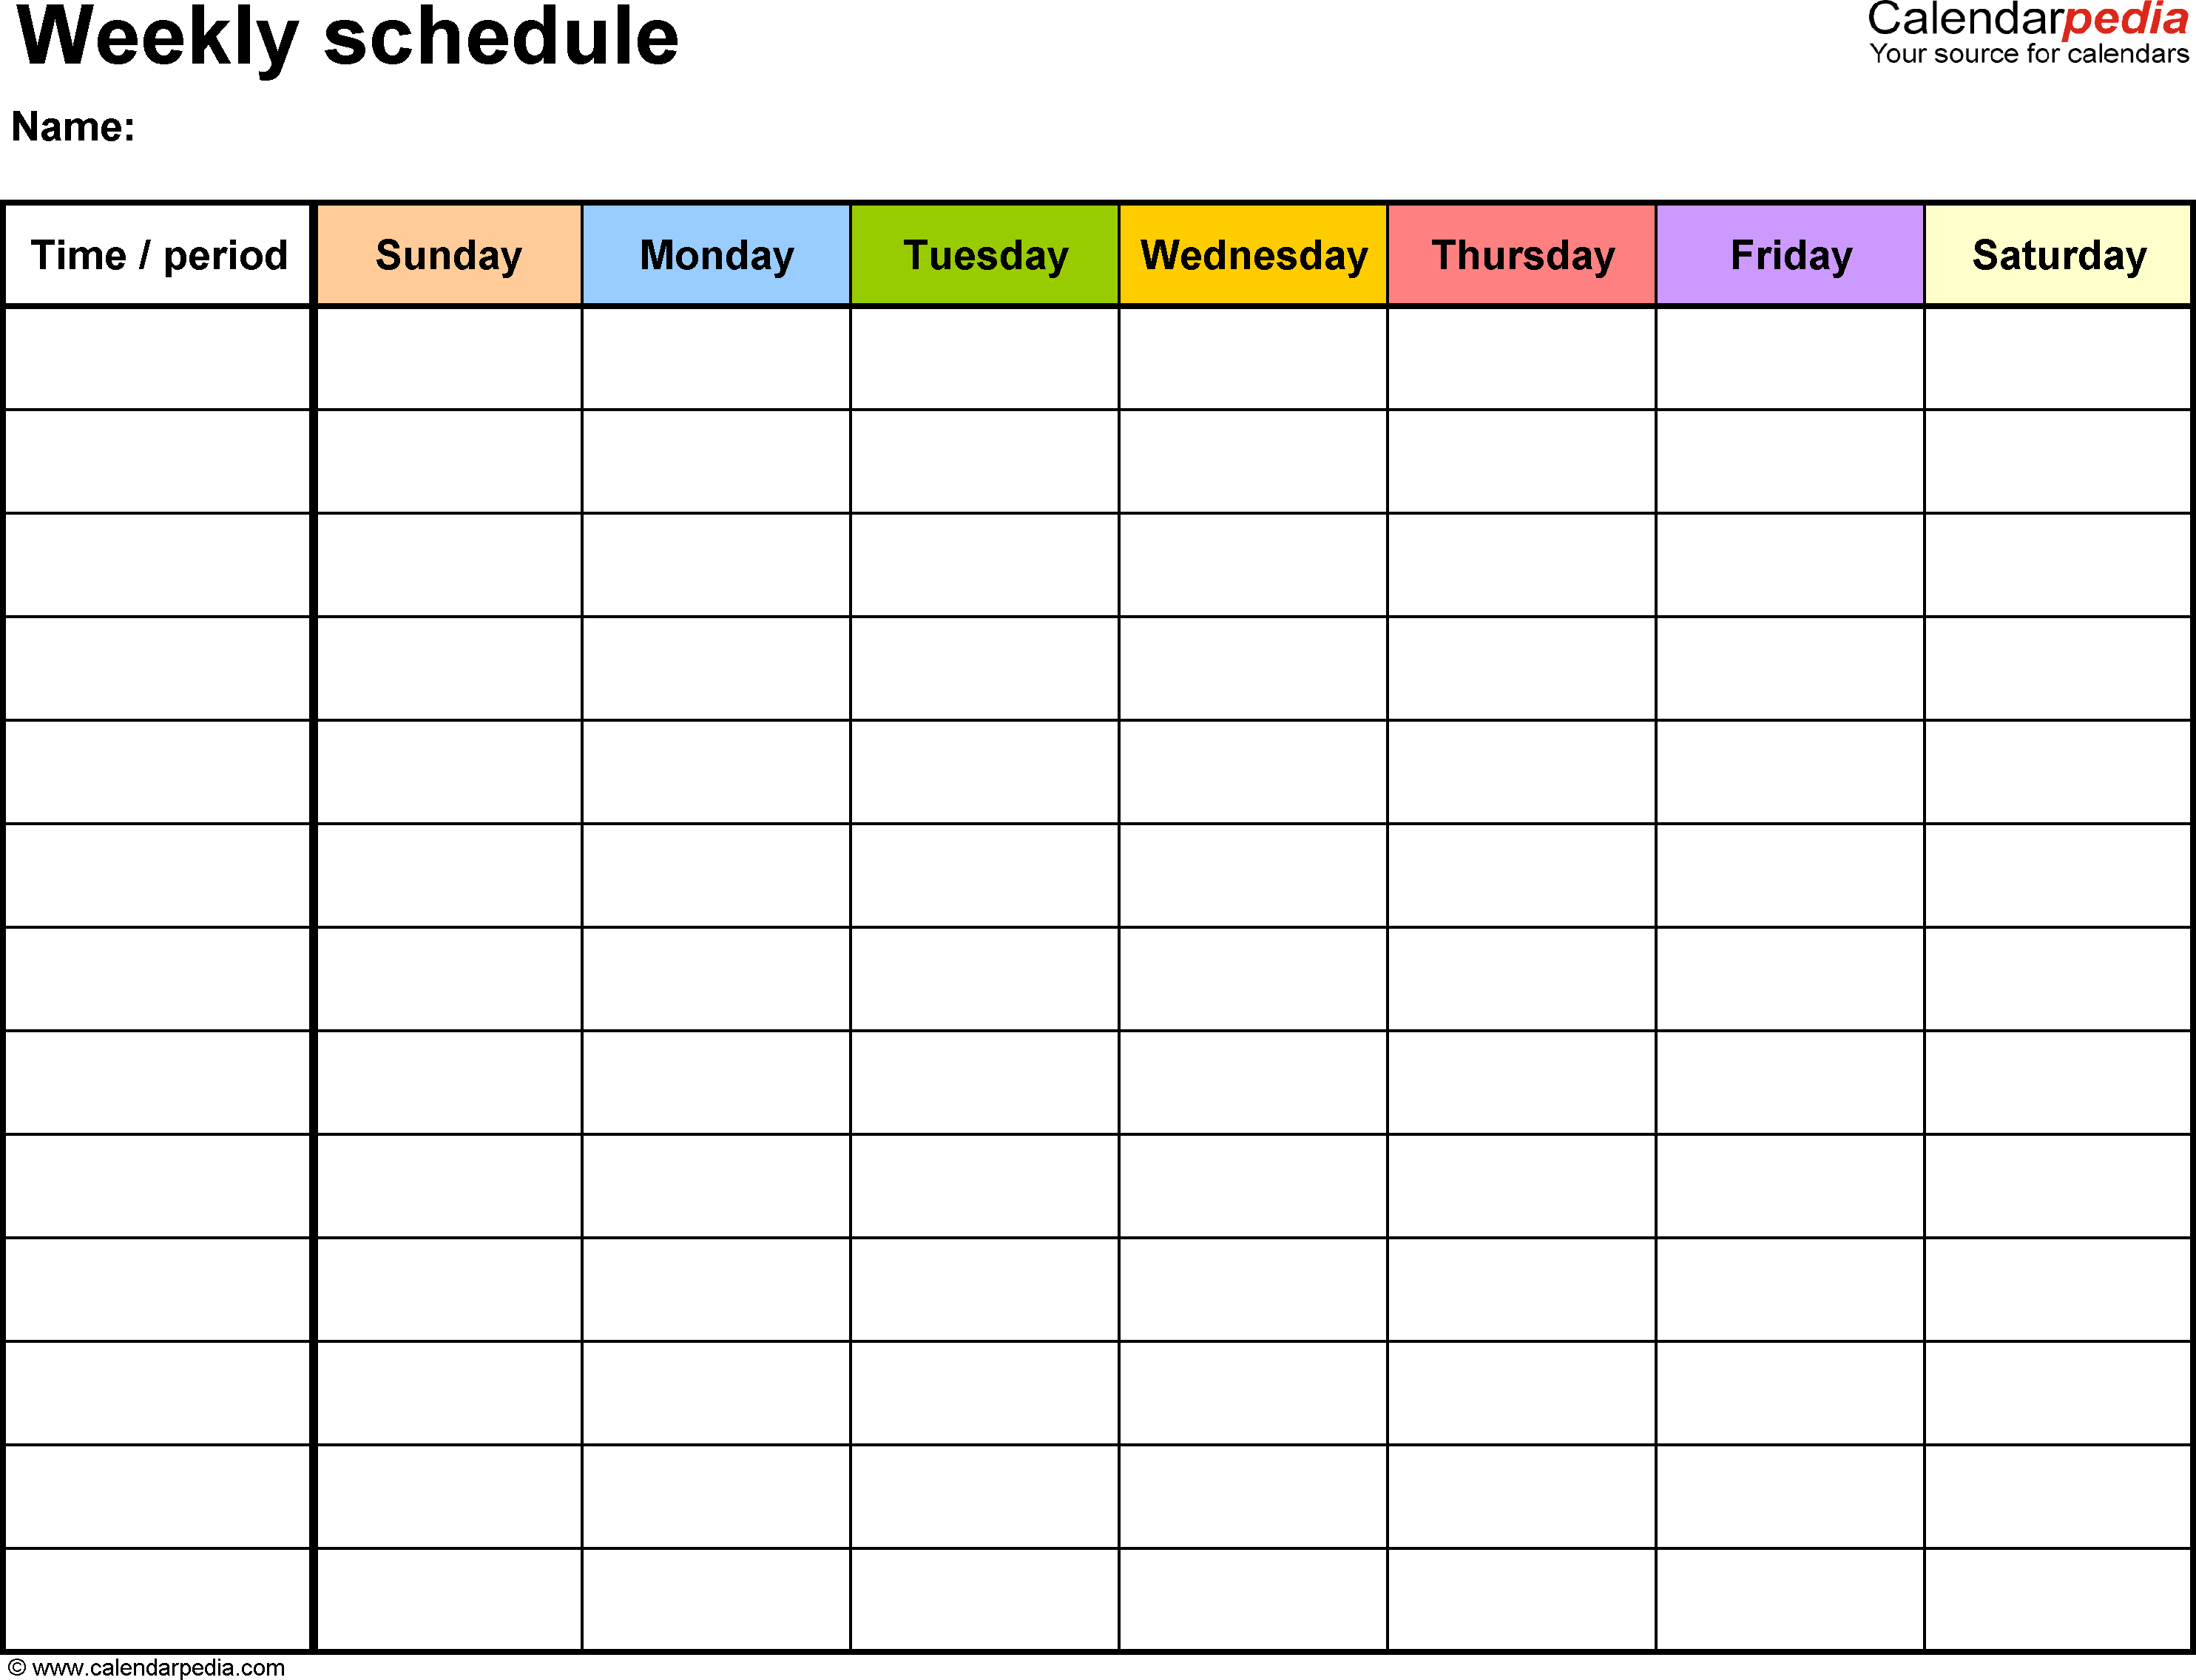 Daycare Weekly Schedule Template - 5 day | Daycare Daily Schedule ...